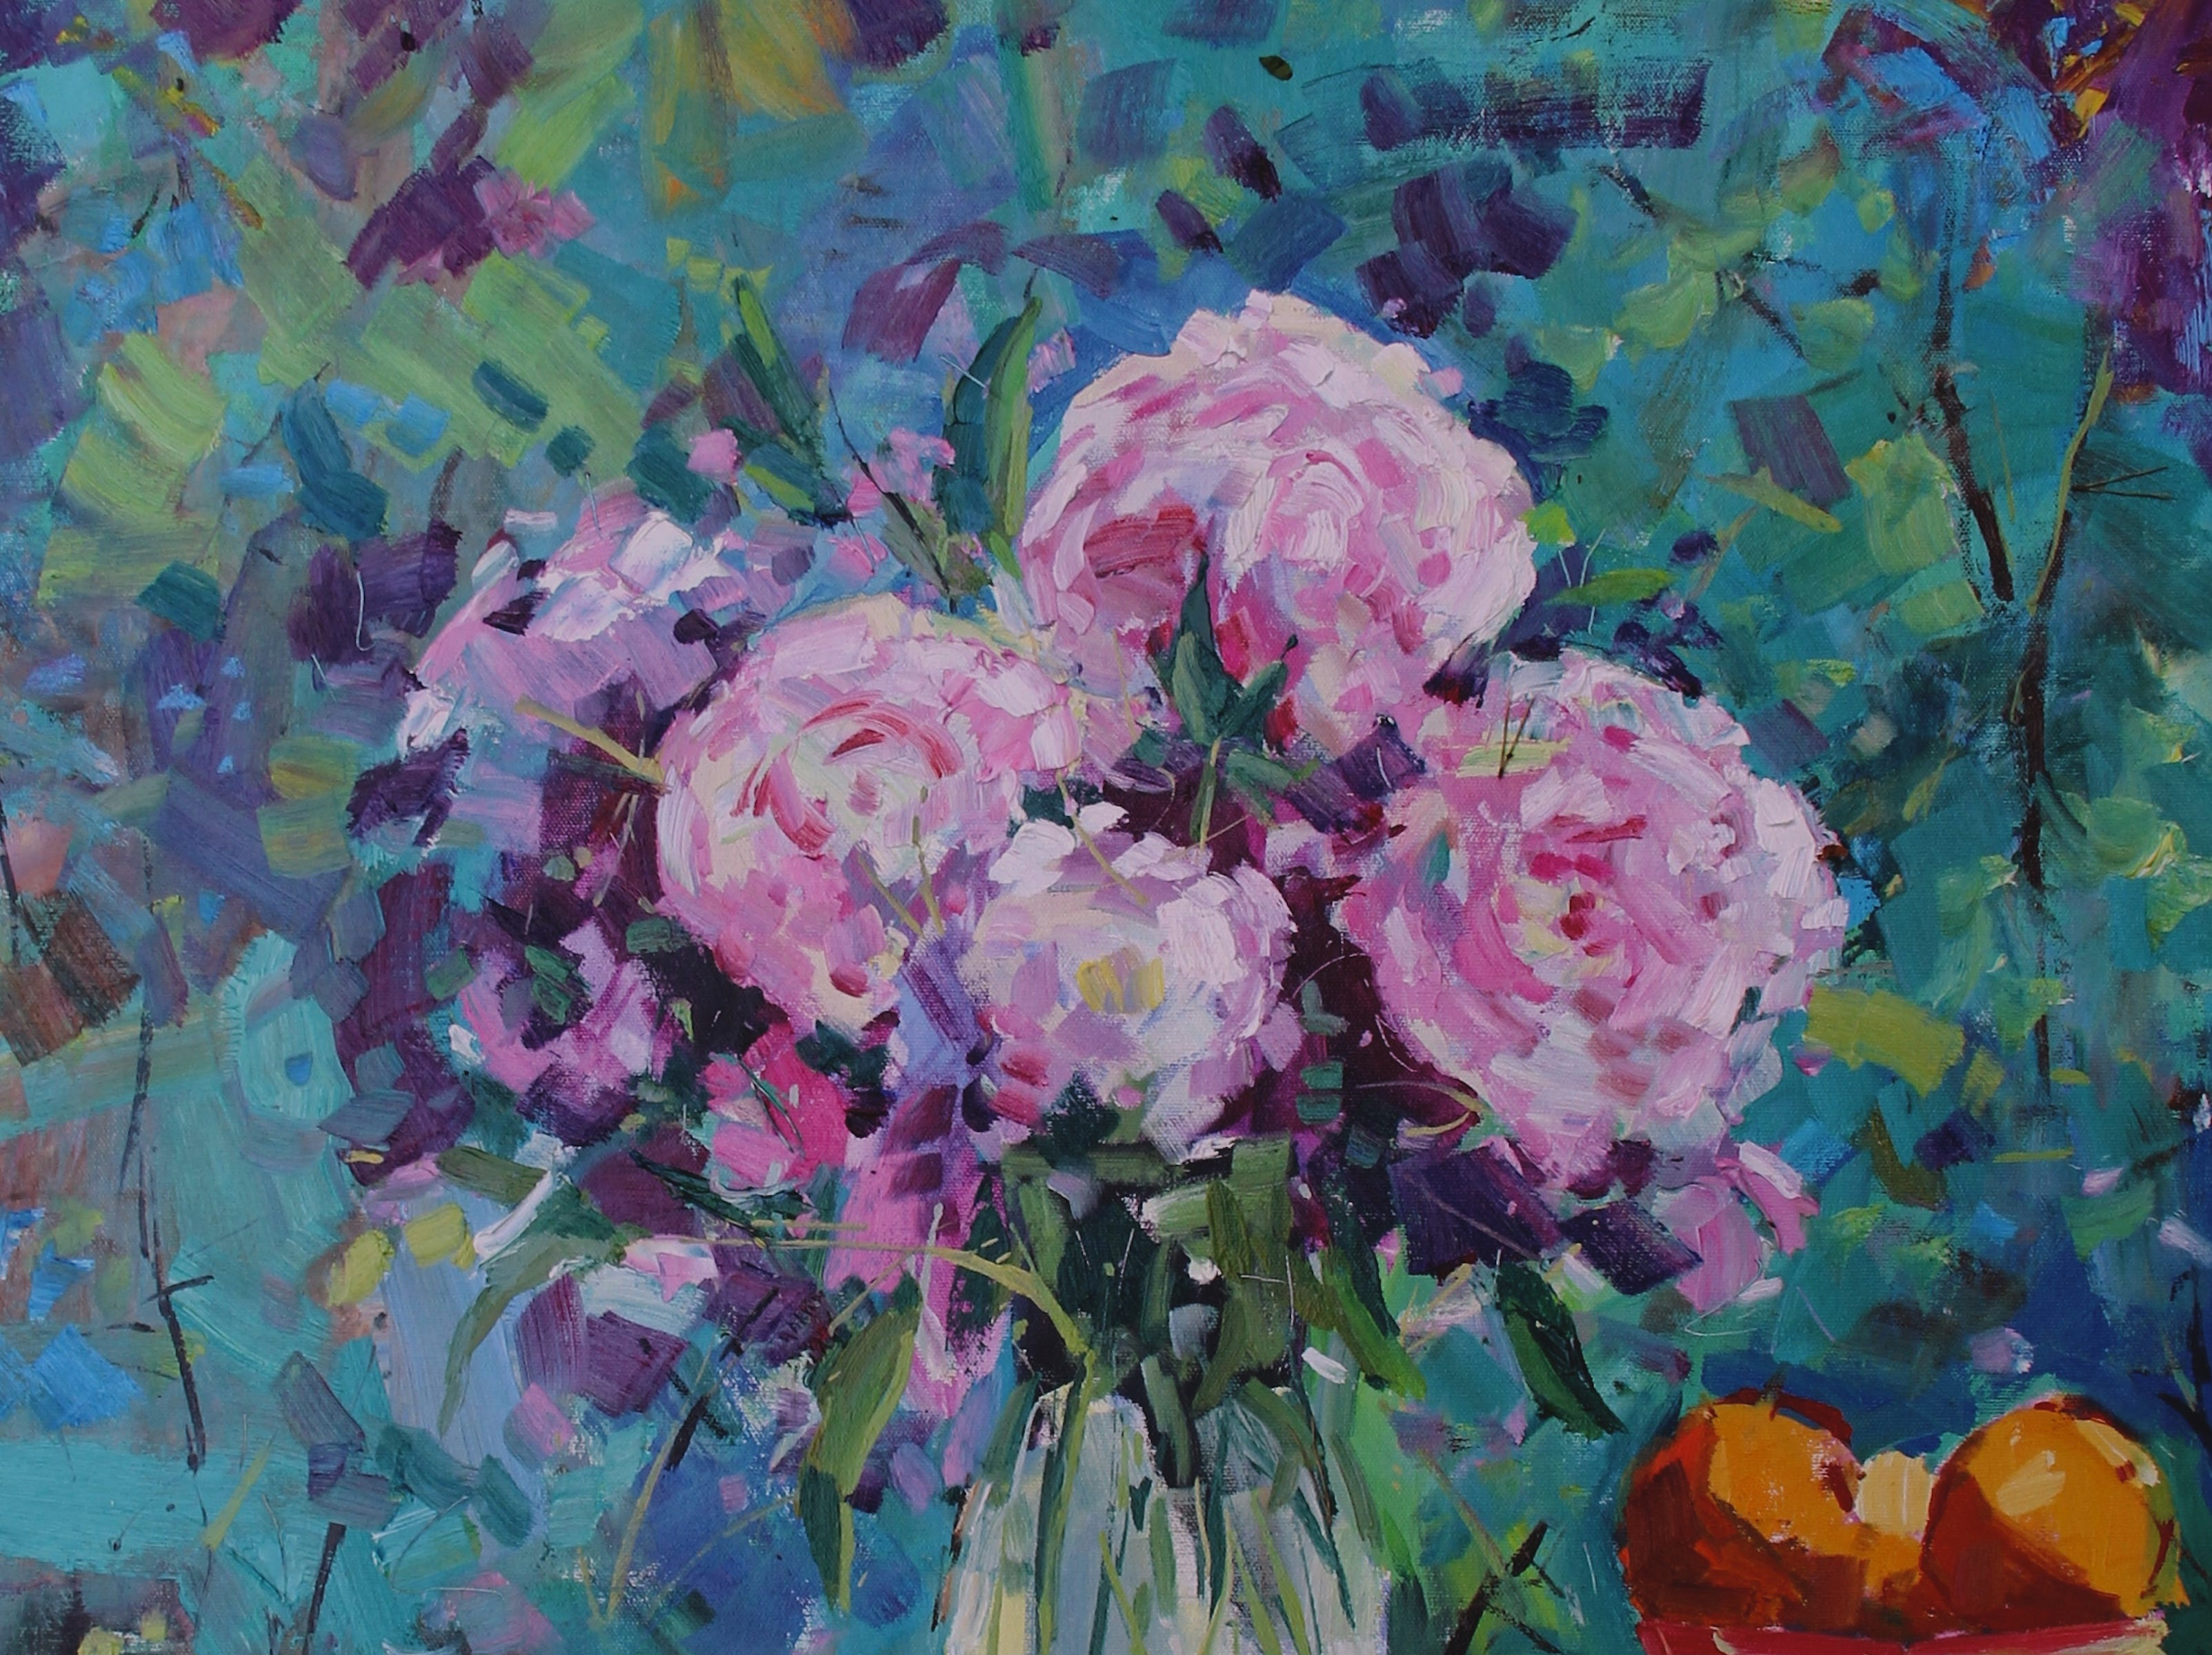 'Backyard Peonies' by Manitowoc artist Bob Beck.